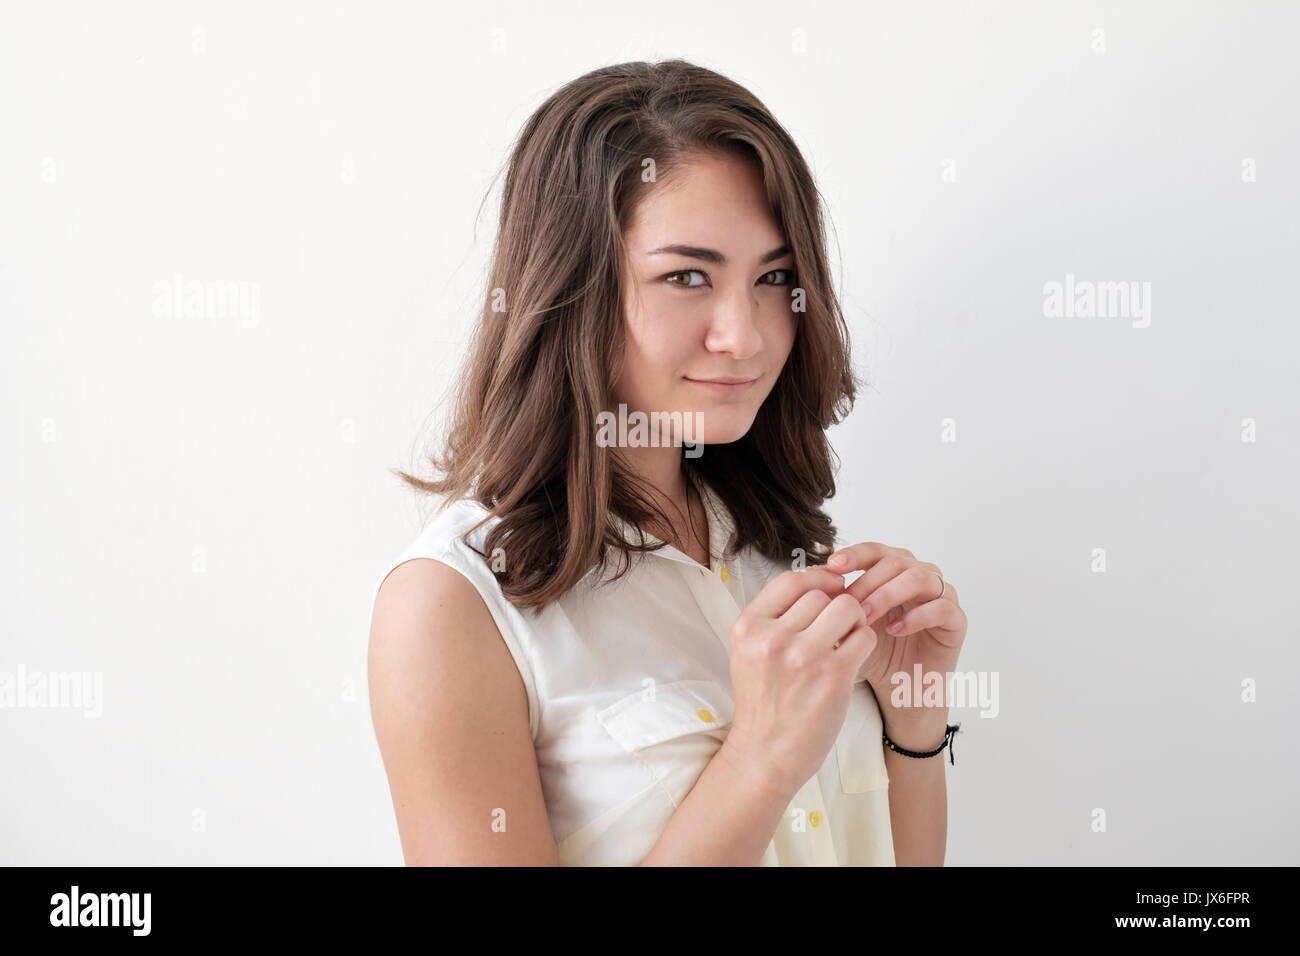 Shy and beautiful young girl looks down - Stock Image